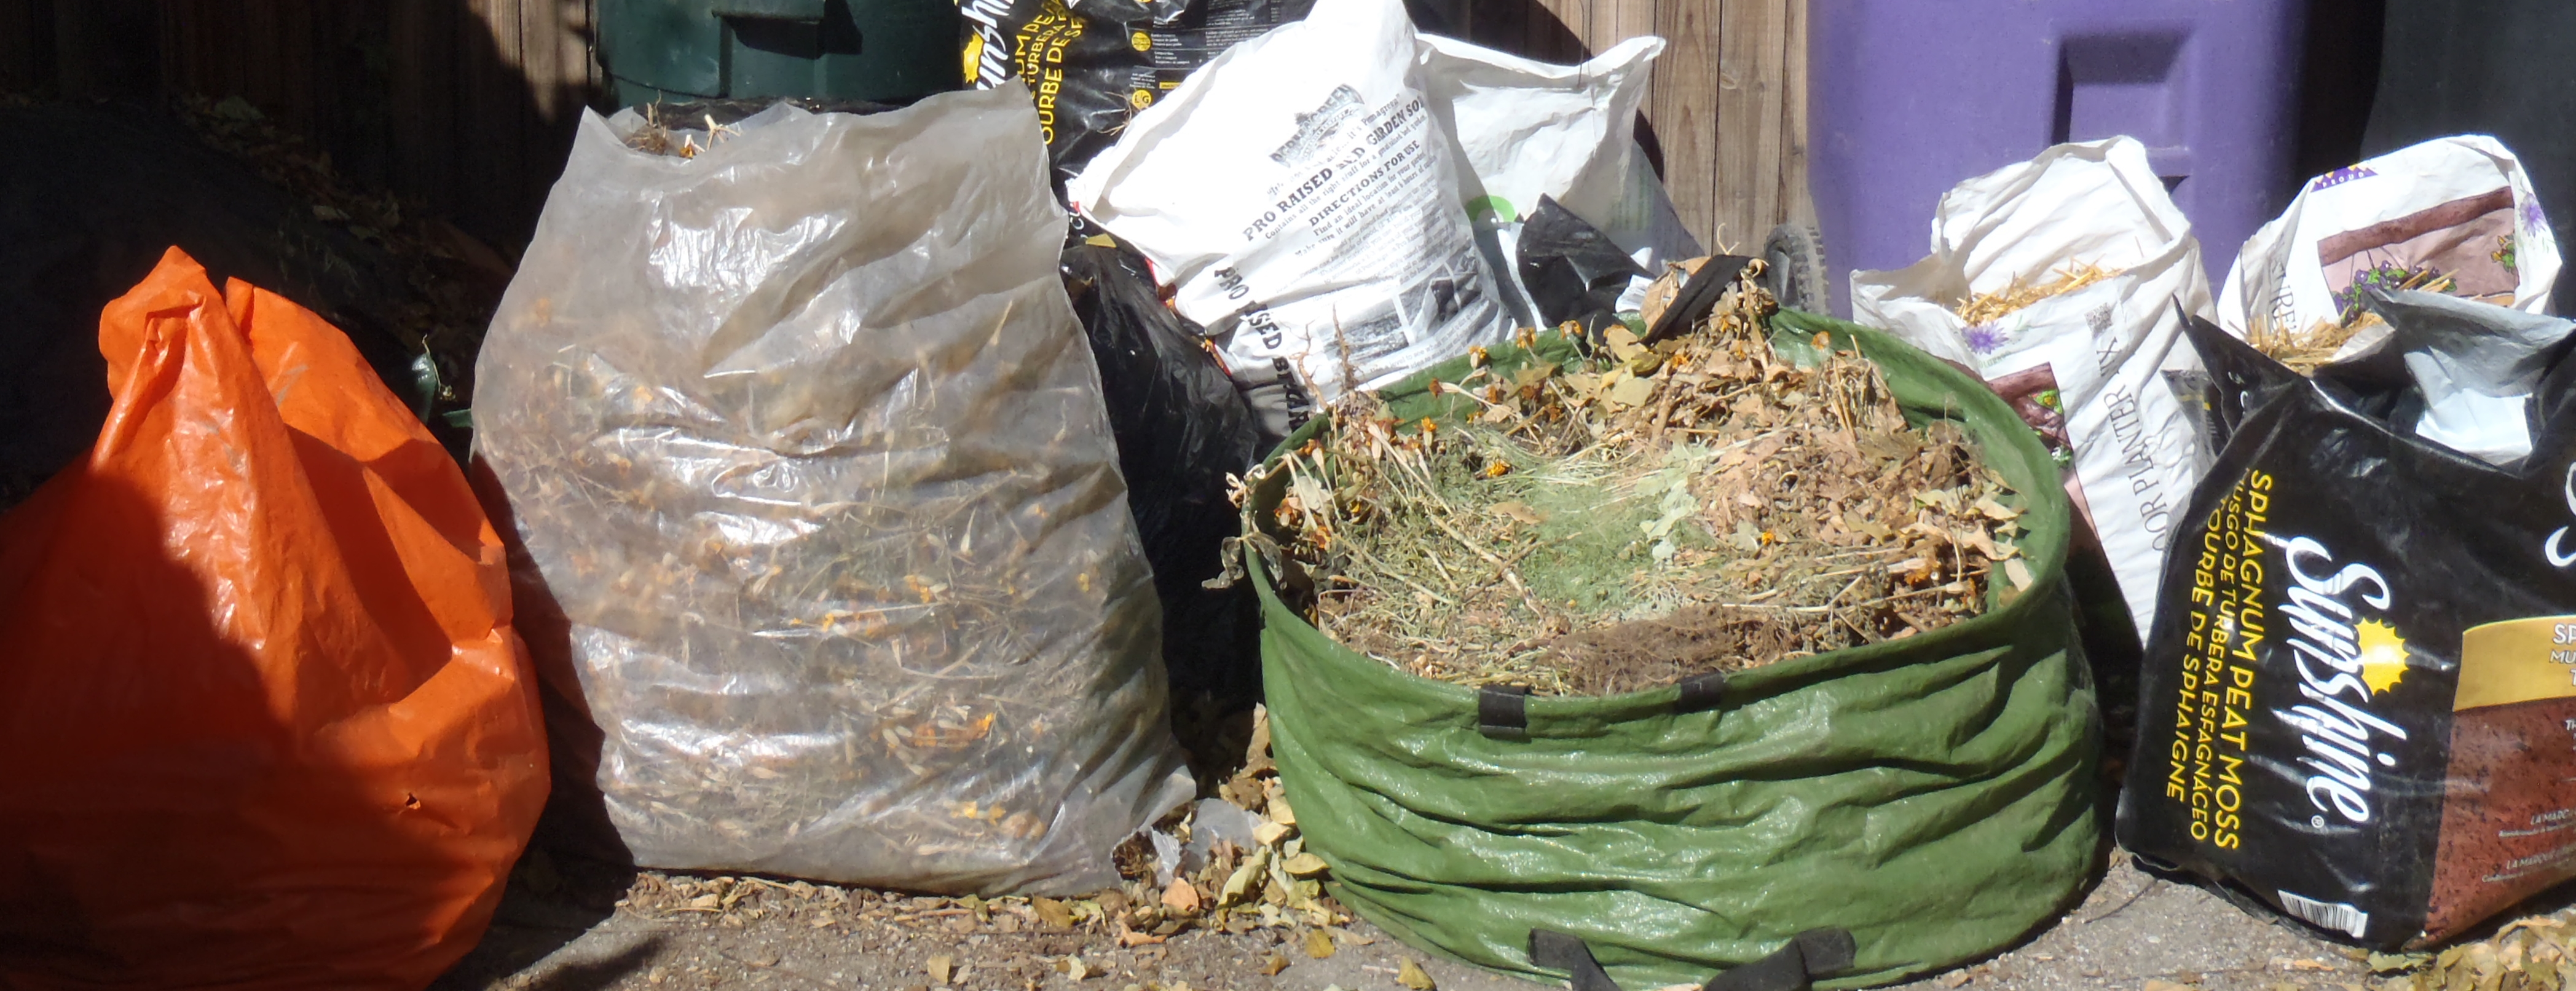 Sheet composting or … cooking up an experiment in the garden